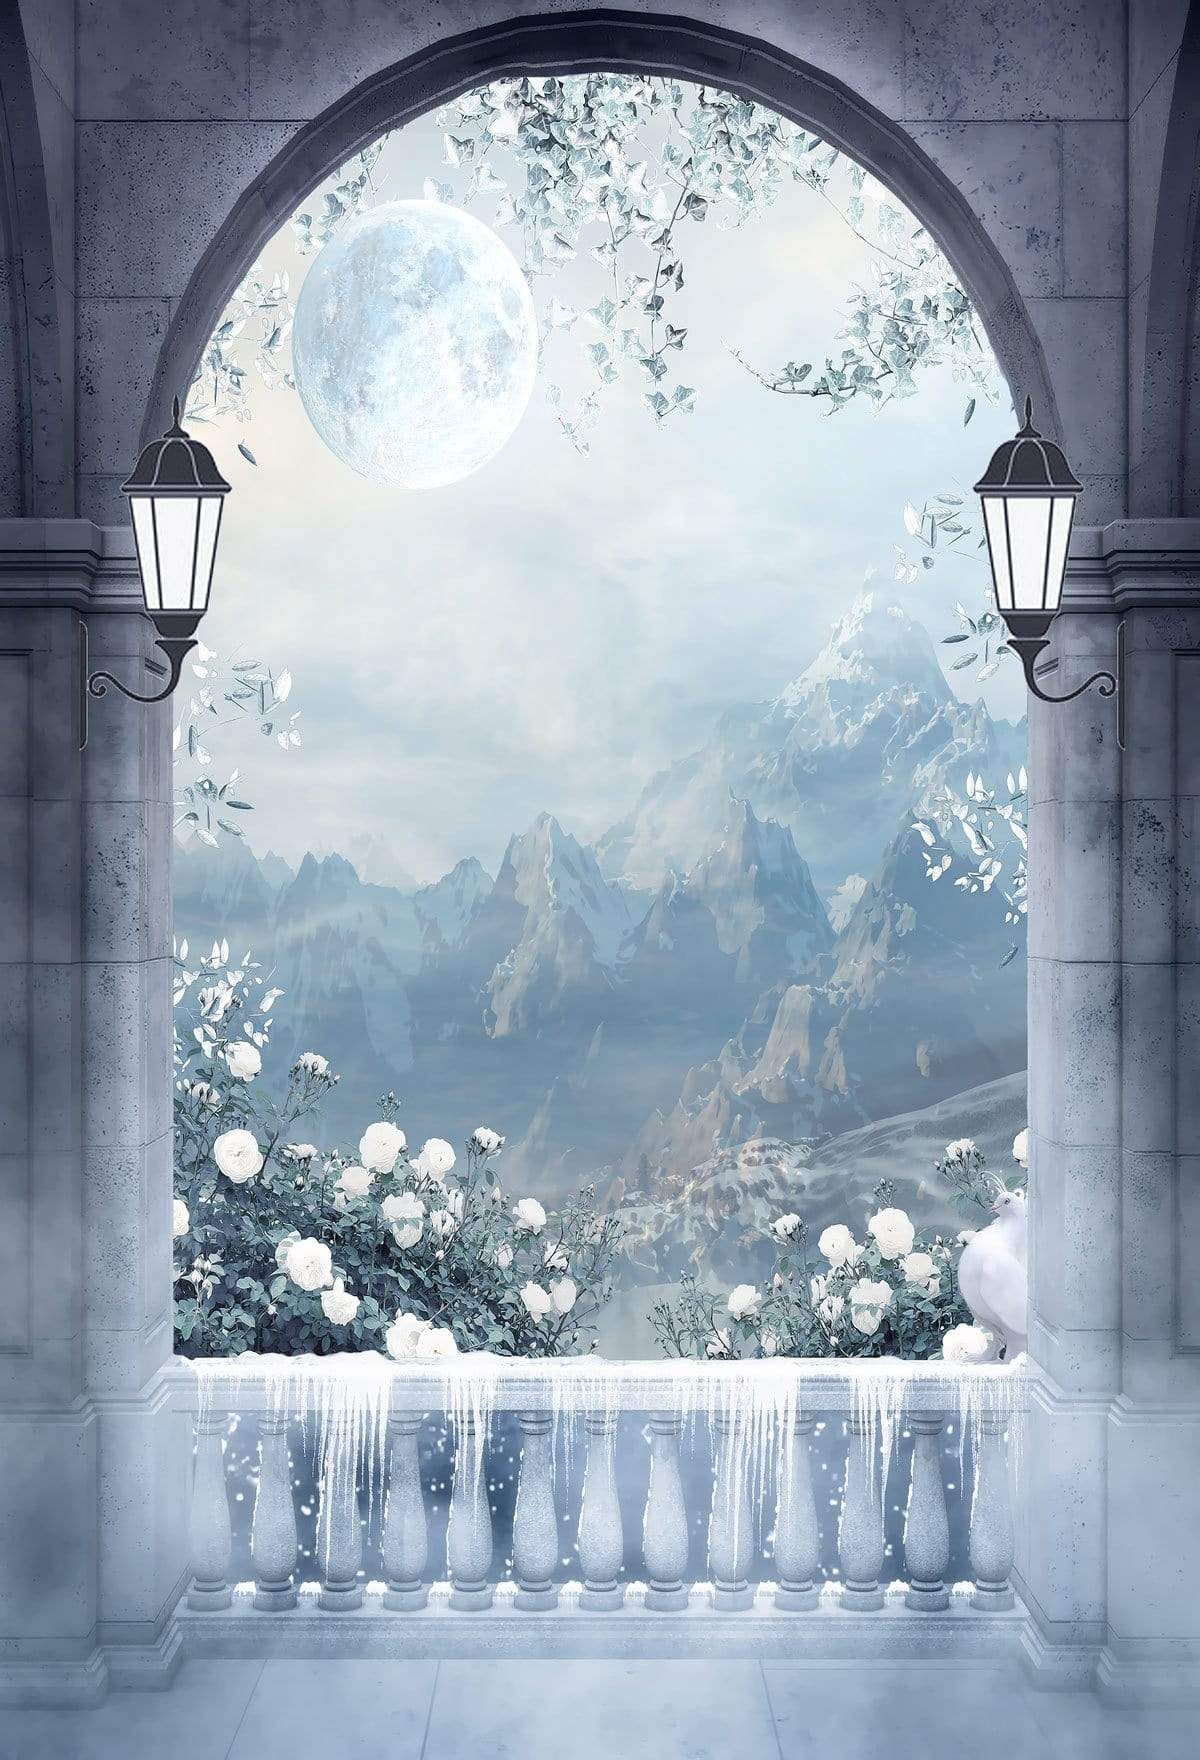 Load image into Gallery viewer, Katebackdrop£ºKate Winter Mountain And Moon Arched Door with Snow Backdrop Designed by JFCC